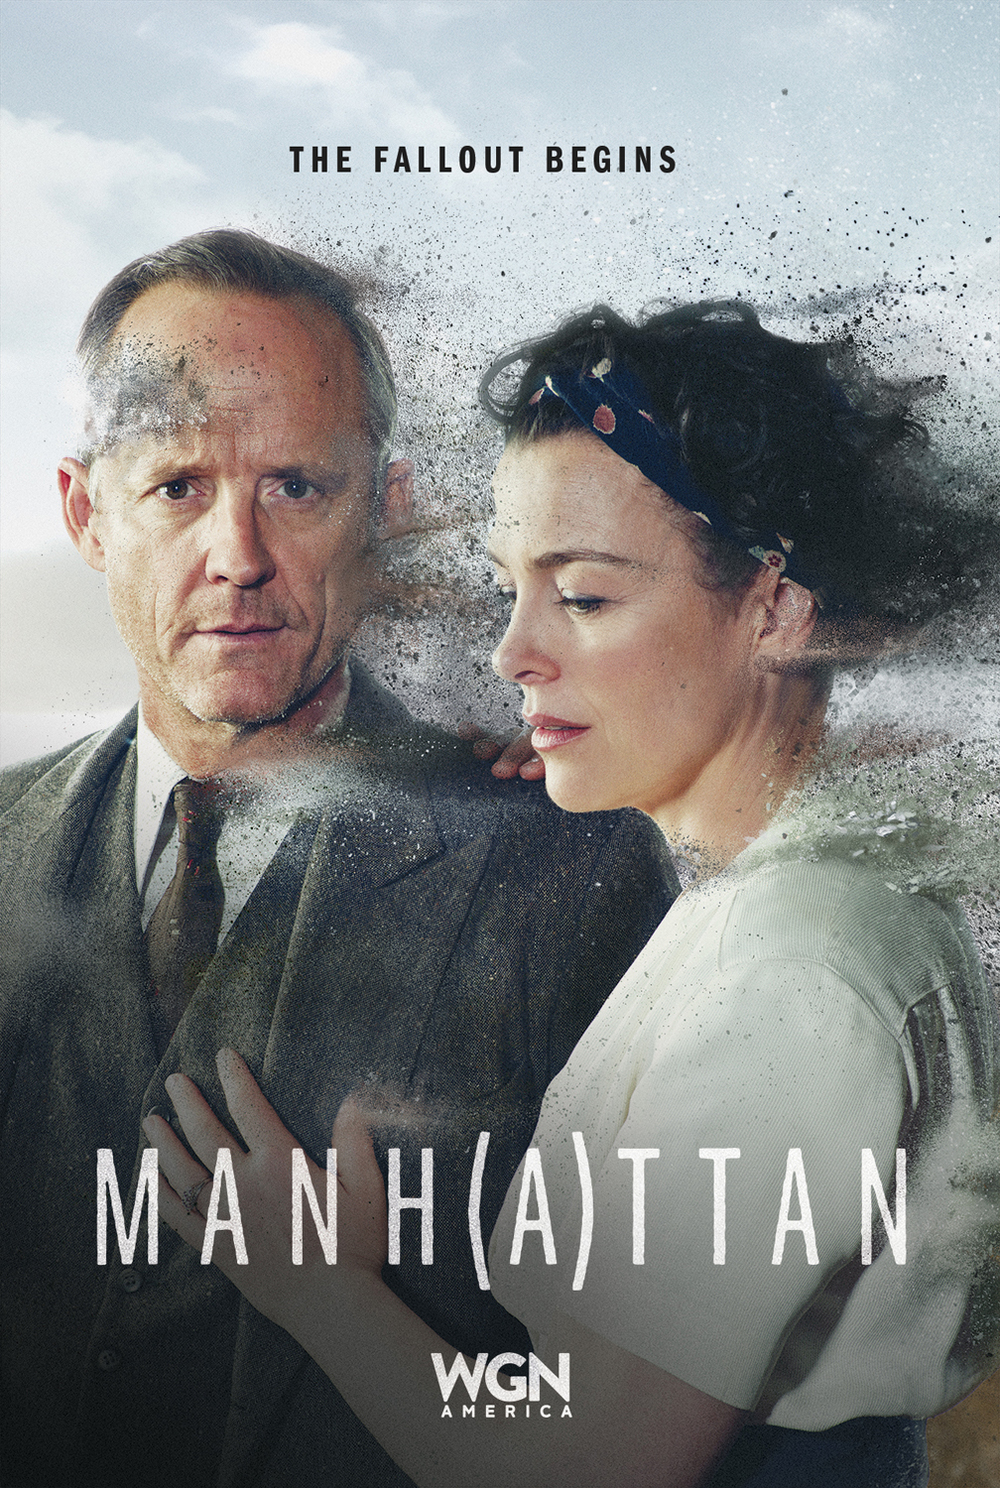 Promotional poster for  Manhattan  Season Two featuring physicist Frank Winter (John Benjamin Hickey) and his wife, botanist Liza Winter (Olivia Williams). (Photo credit: Skydance Media/WGN America)